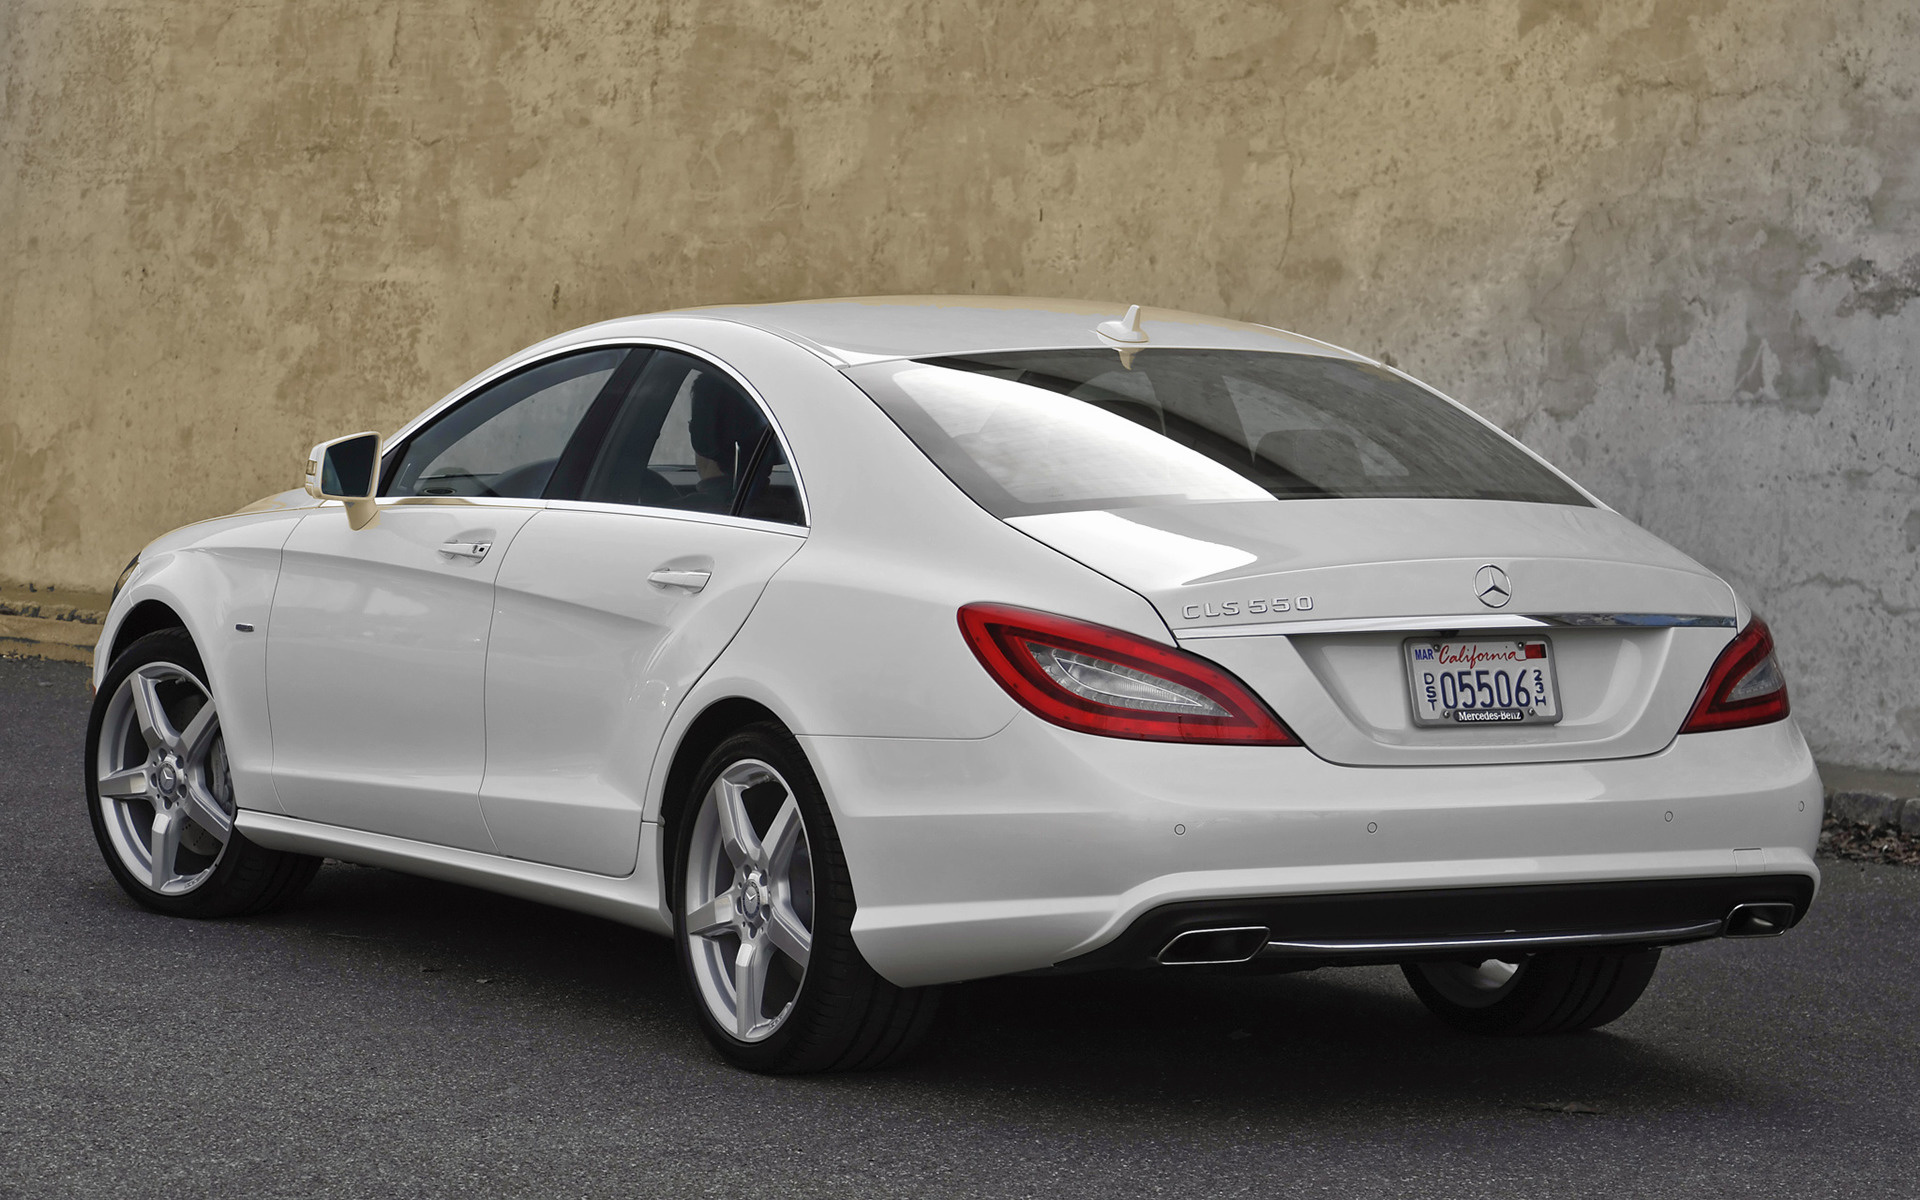 mercedes benz cls class amg styling 2010 us wallpapers and hd images car pixel. Black Bedroom Furniture Sets. Home Design Ideas